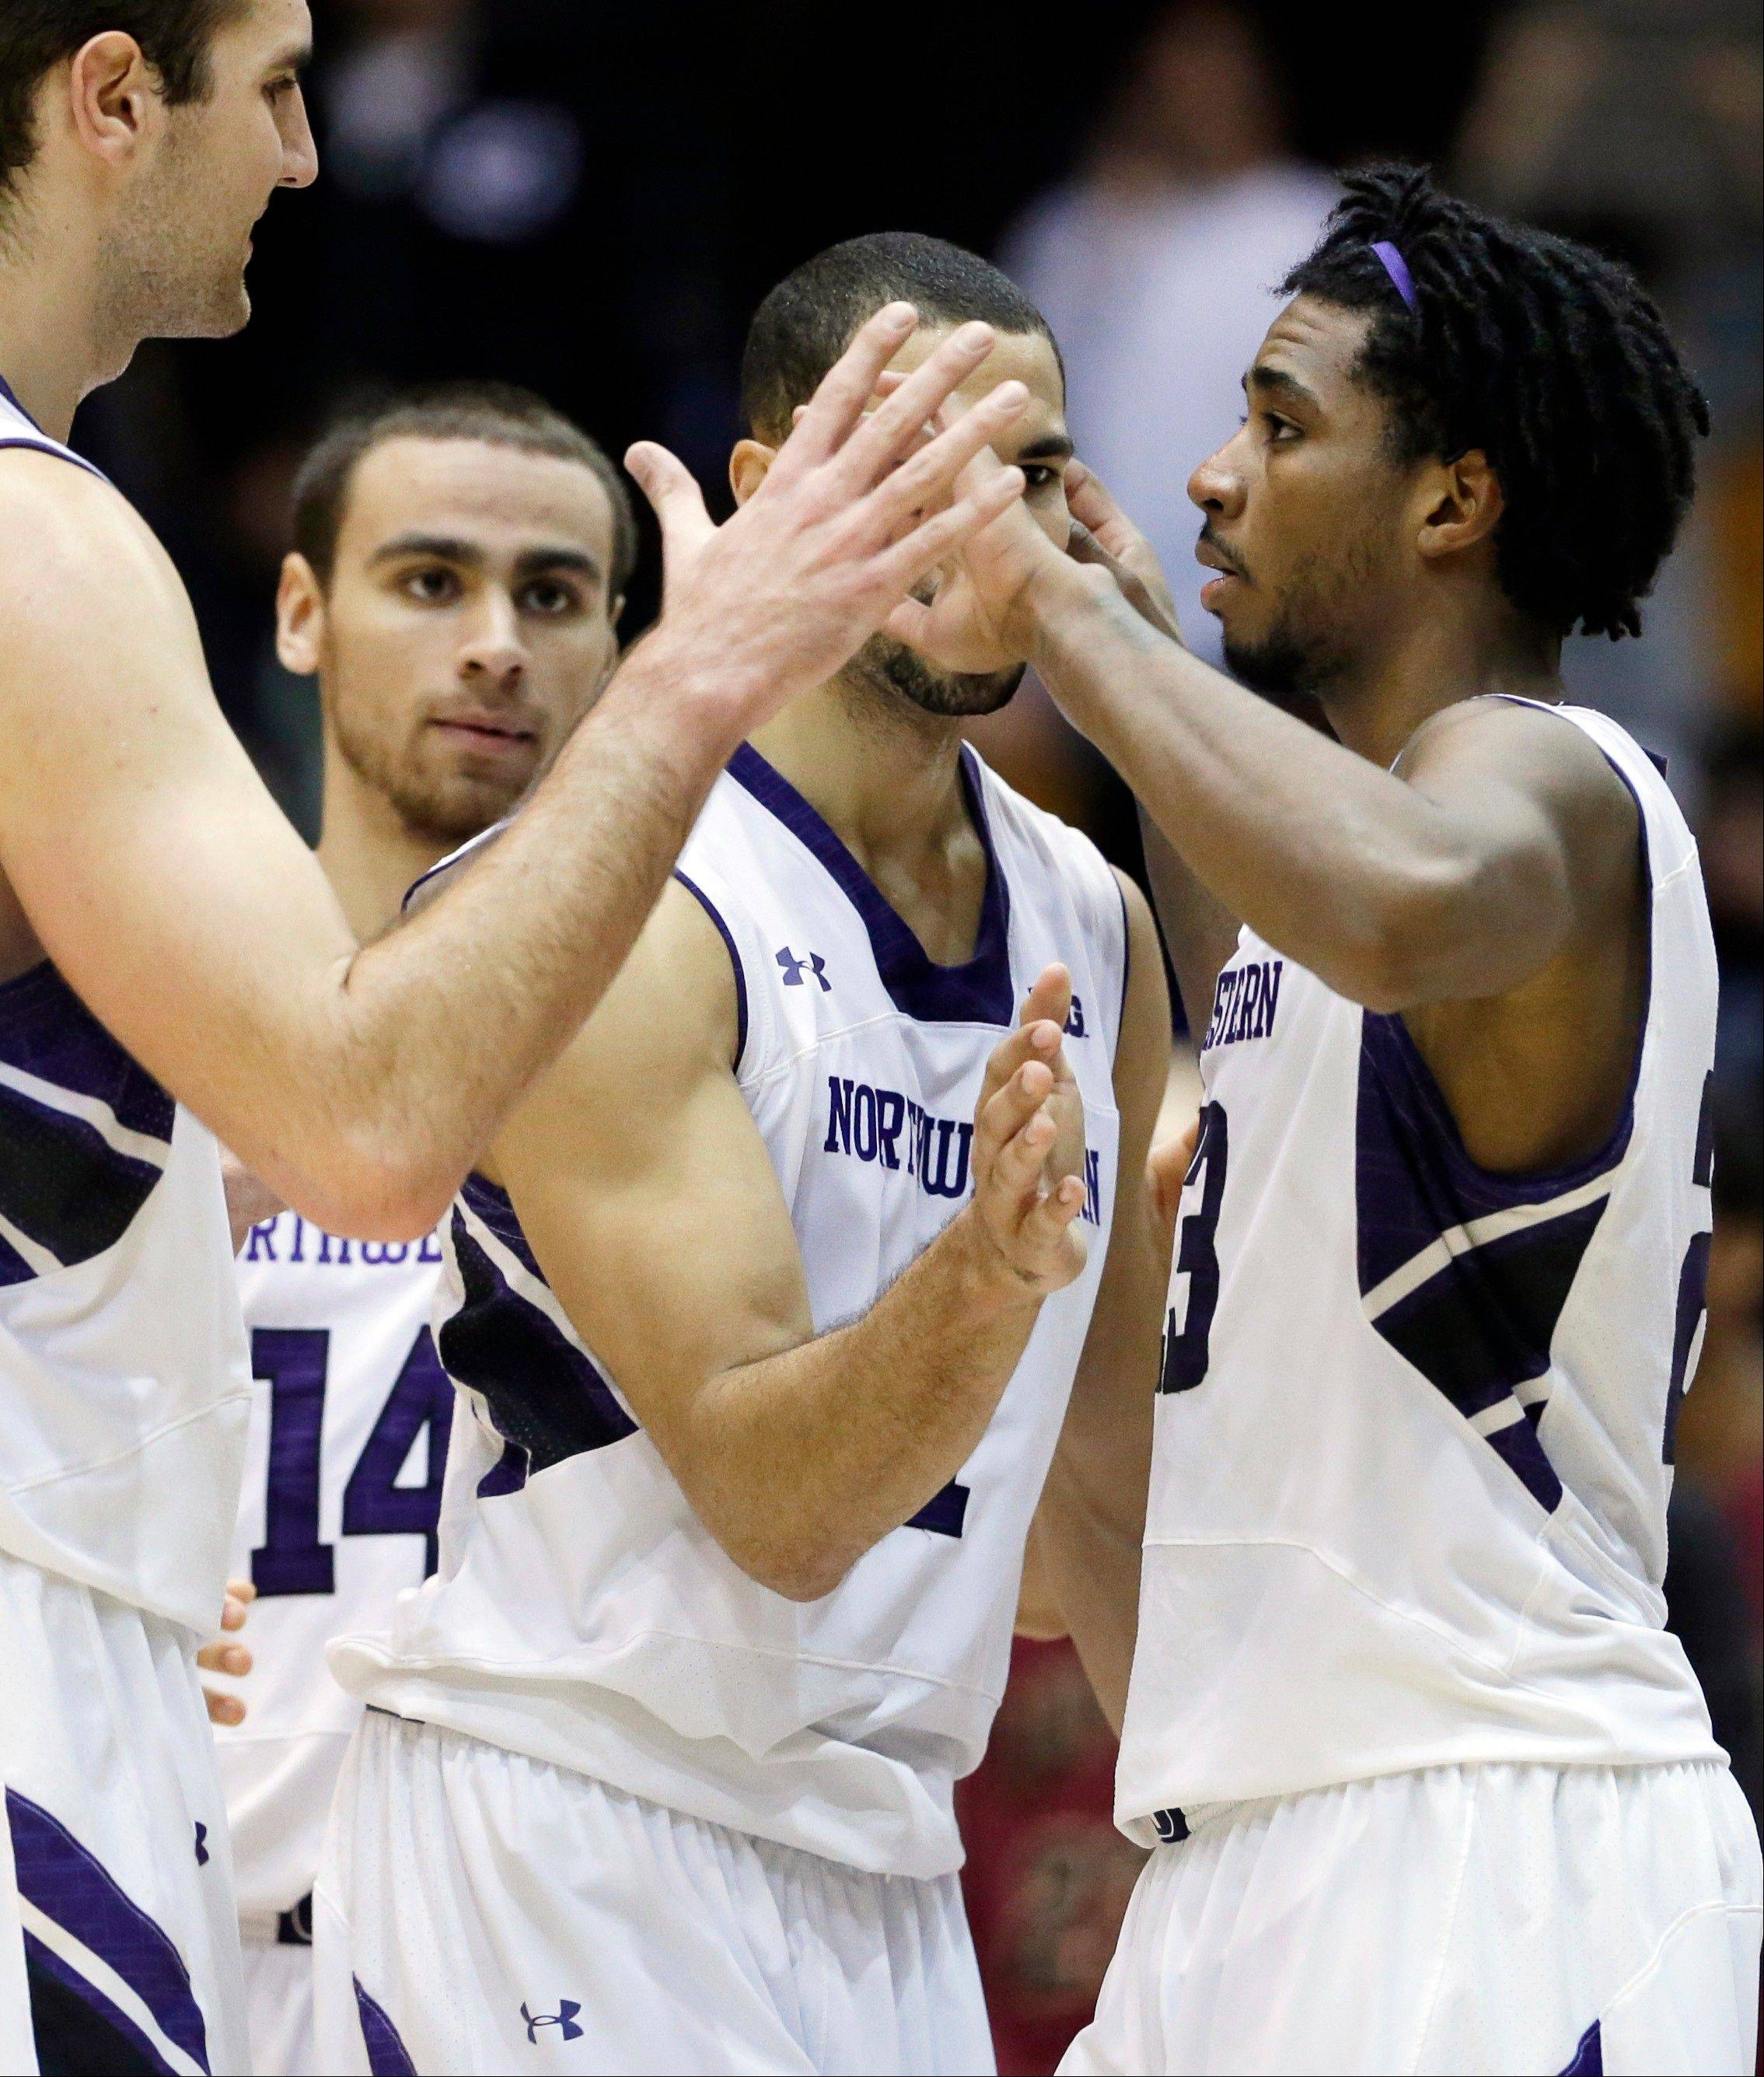 Cobb's runner lifts Northwestern past IUPUI 63-61